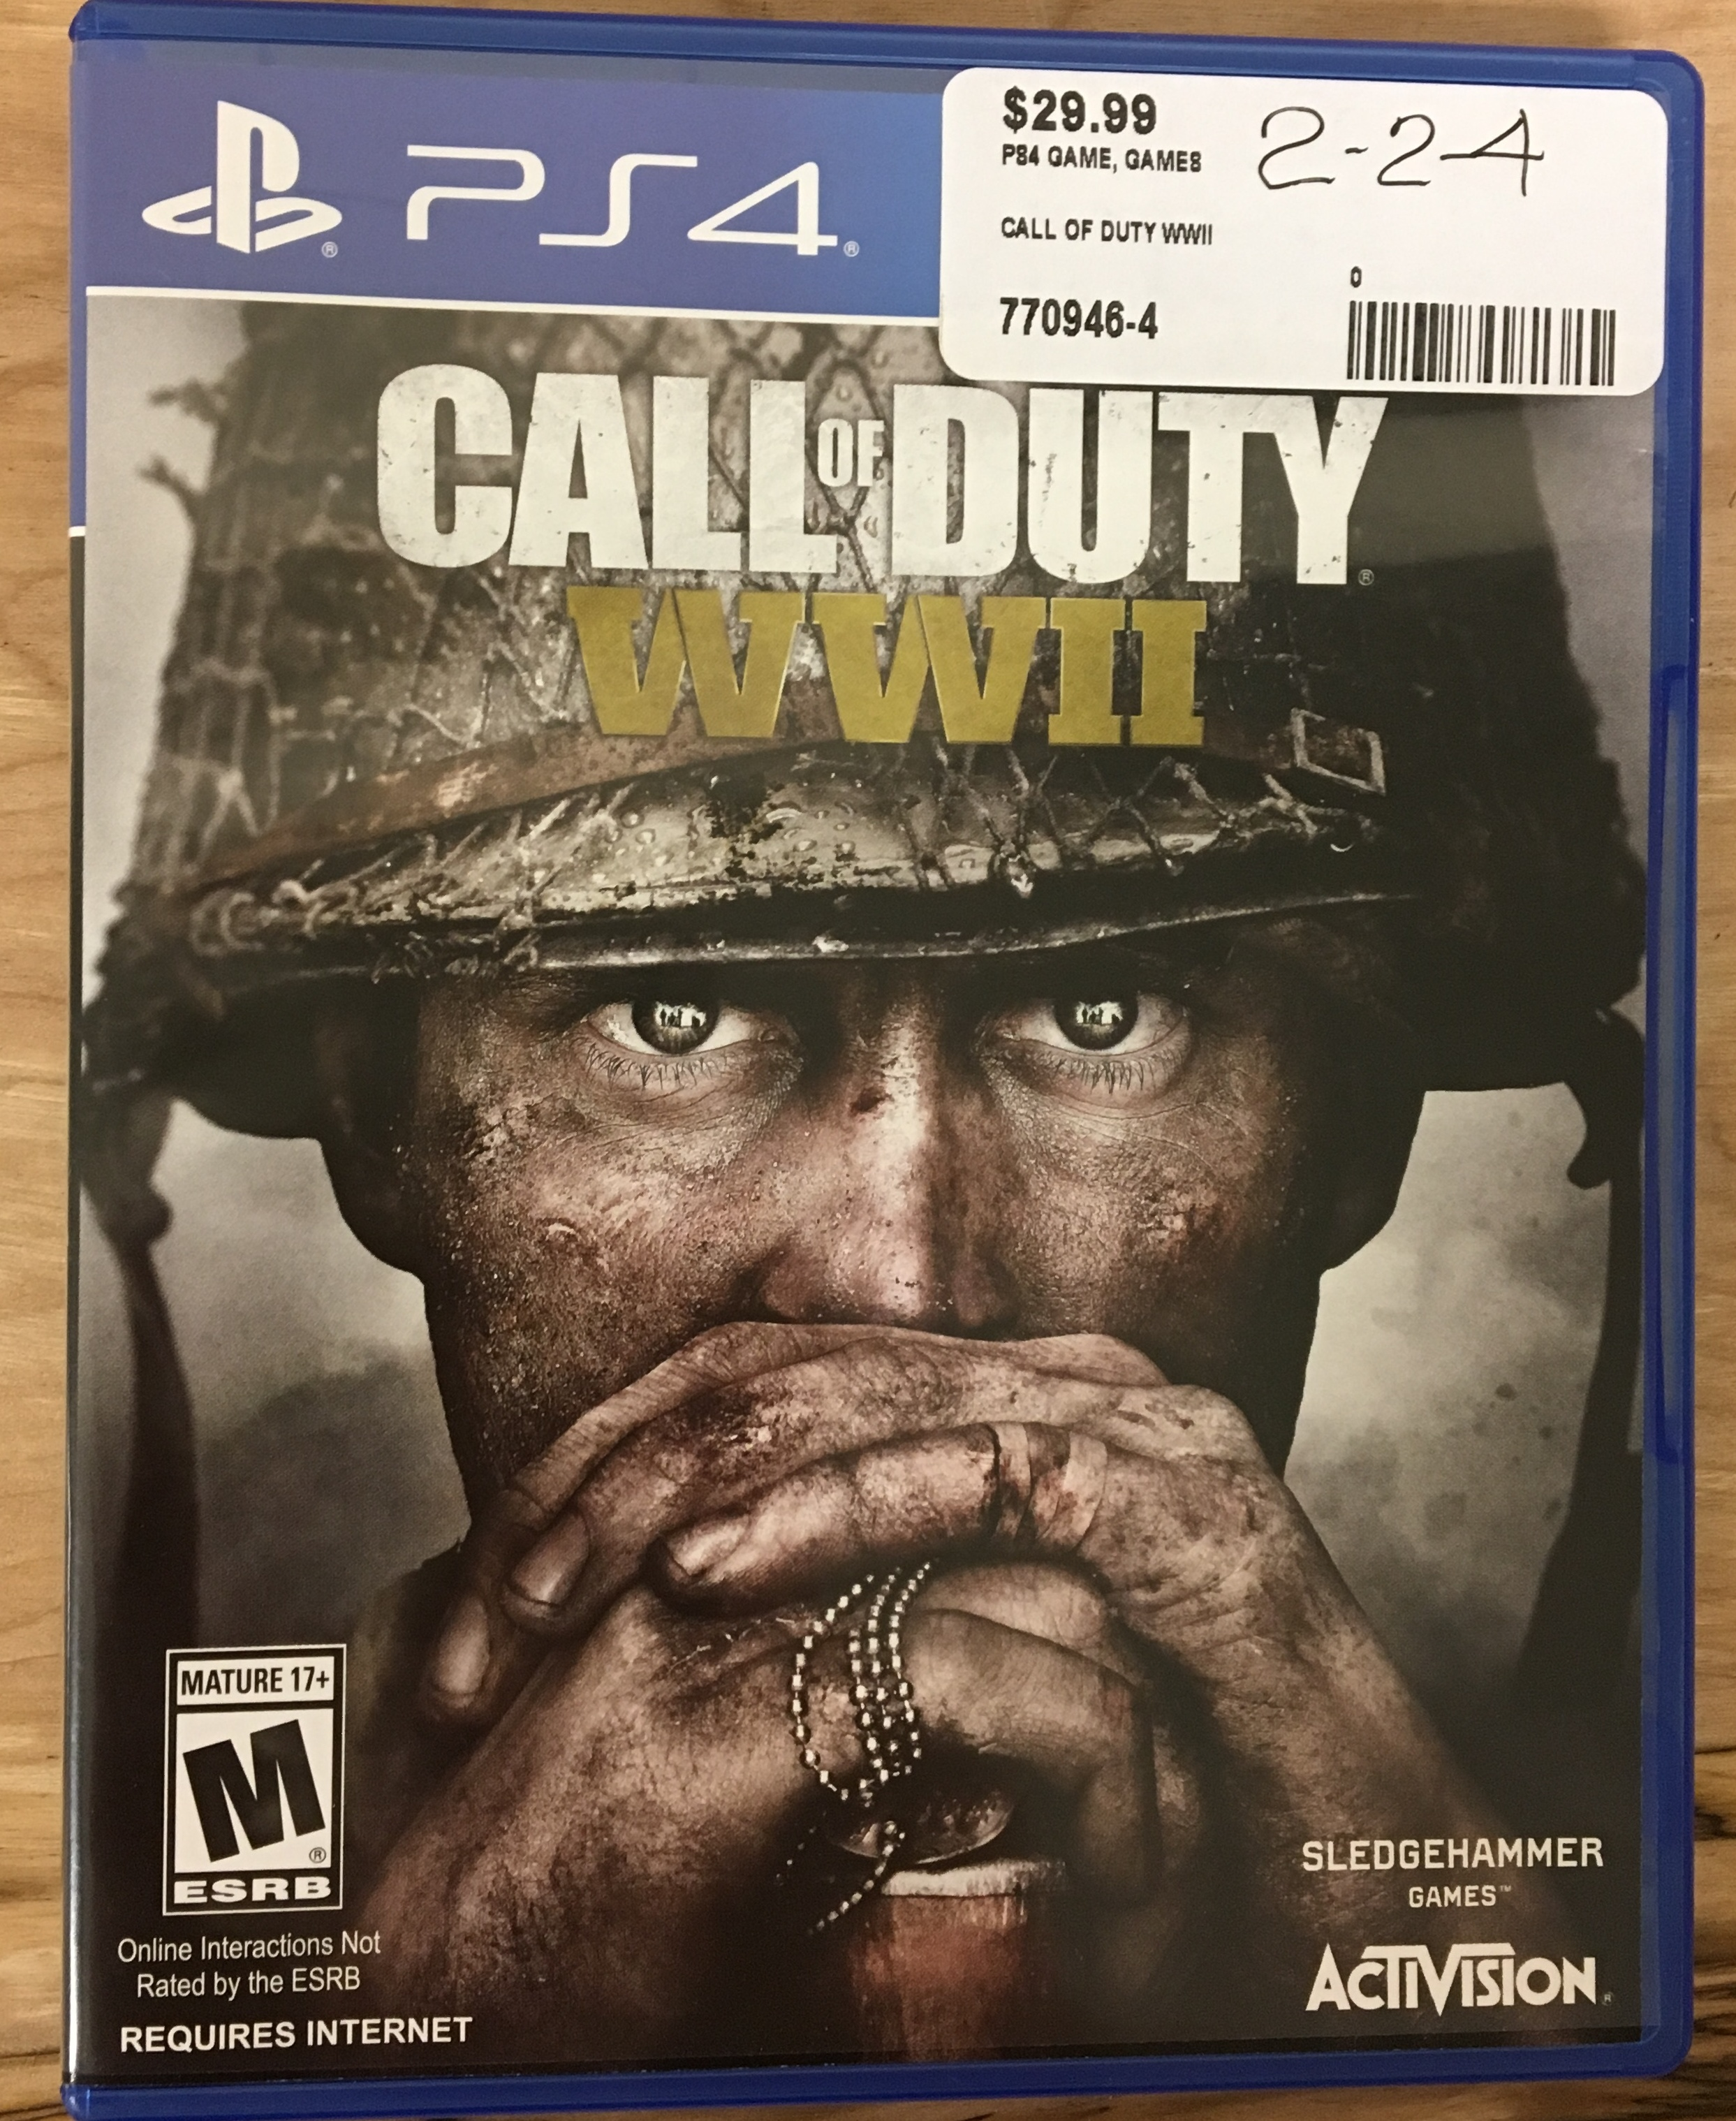 PS4 GAMES - CALL OF DUTY WWII